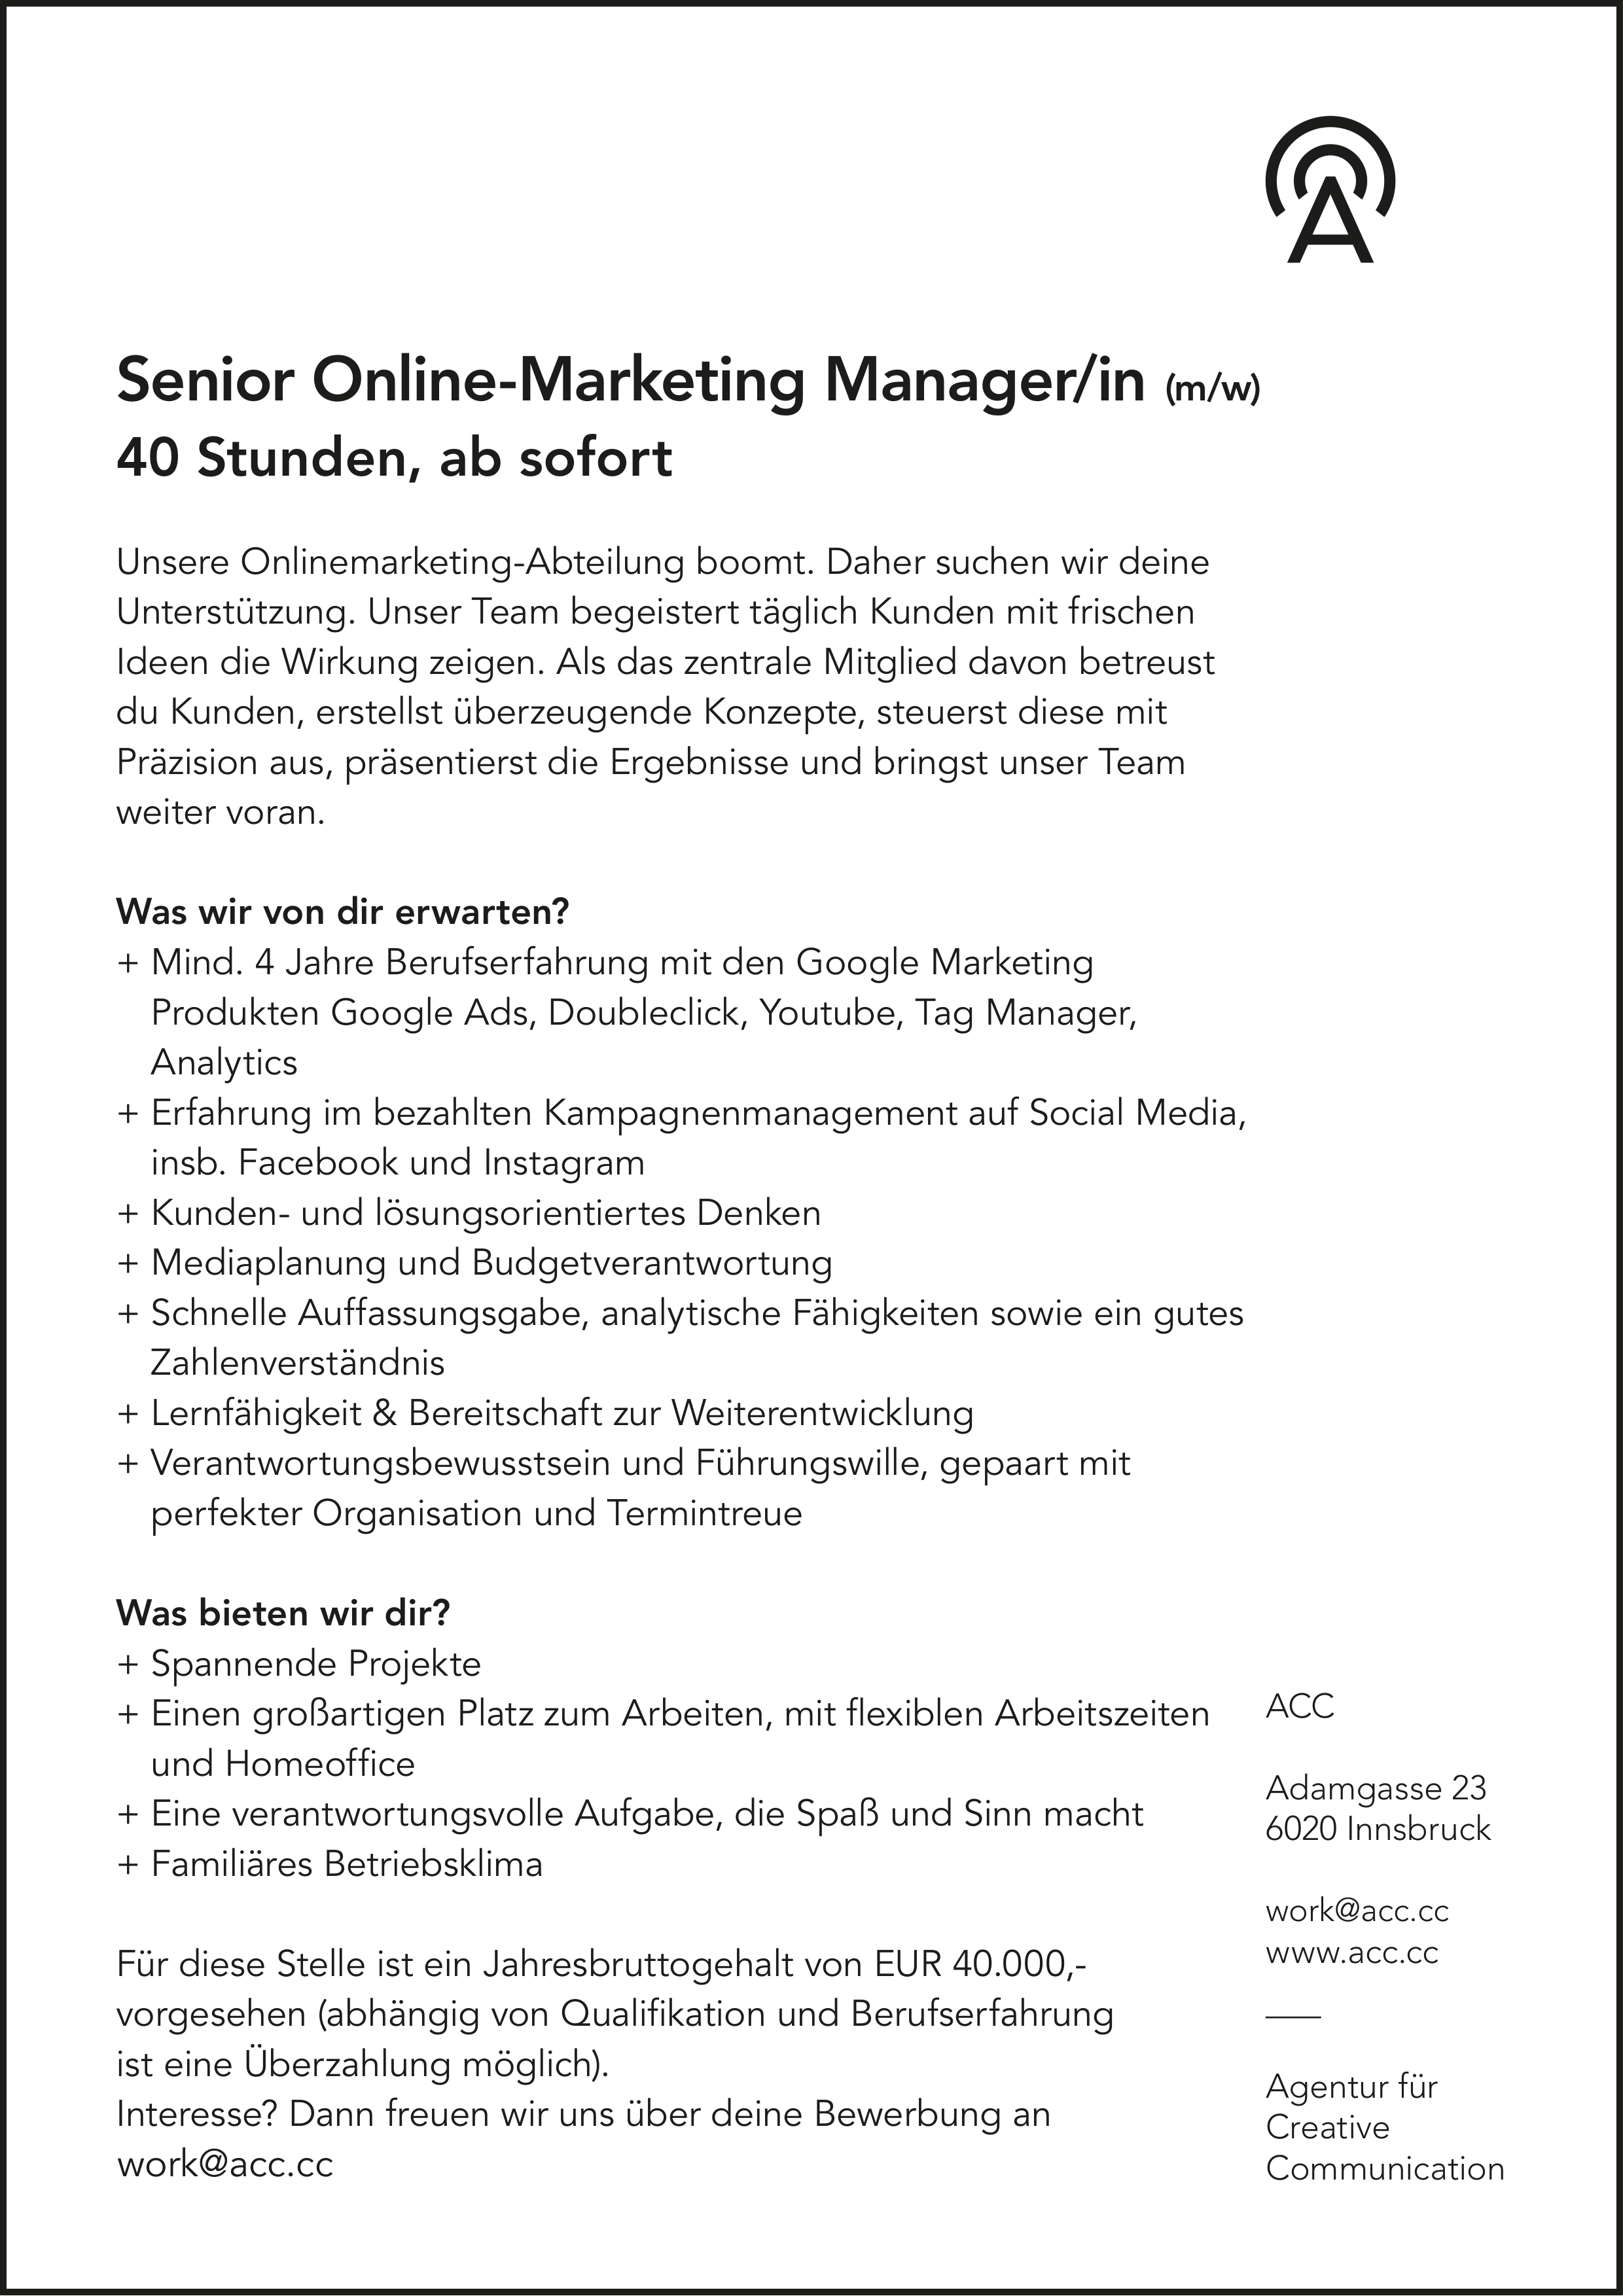 Senior Online-Marketing Manager/in